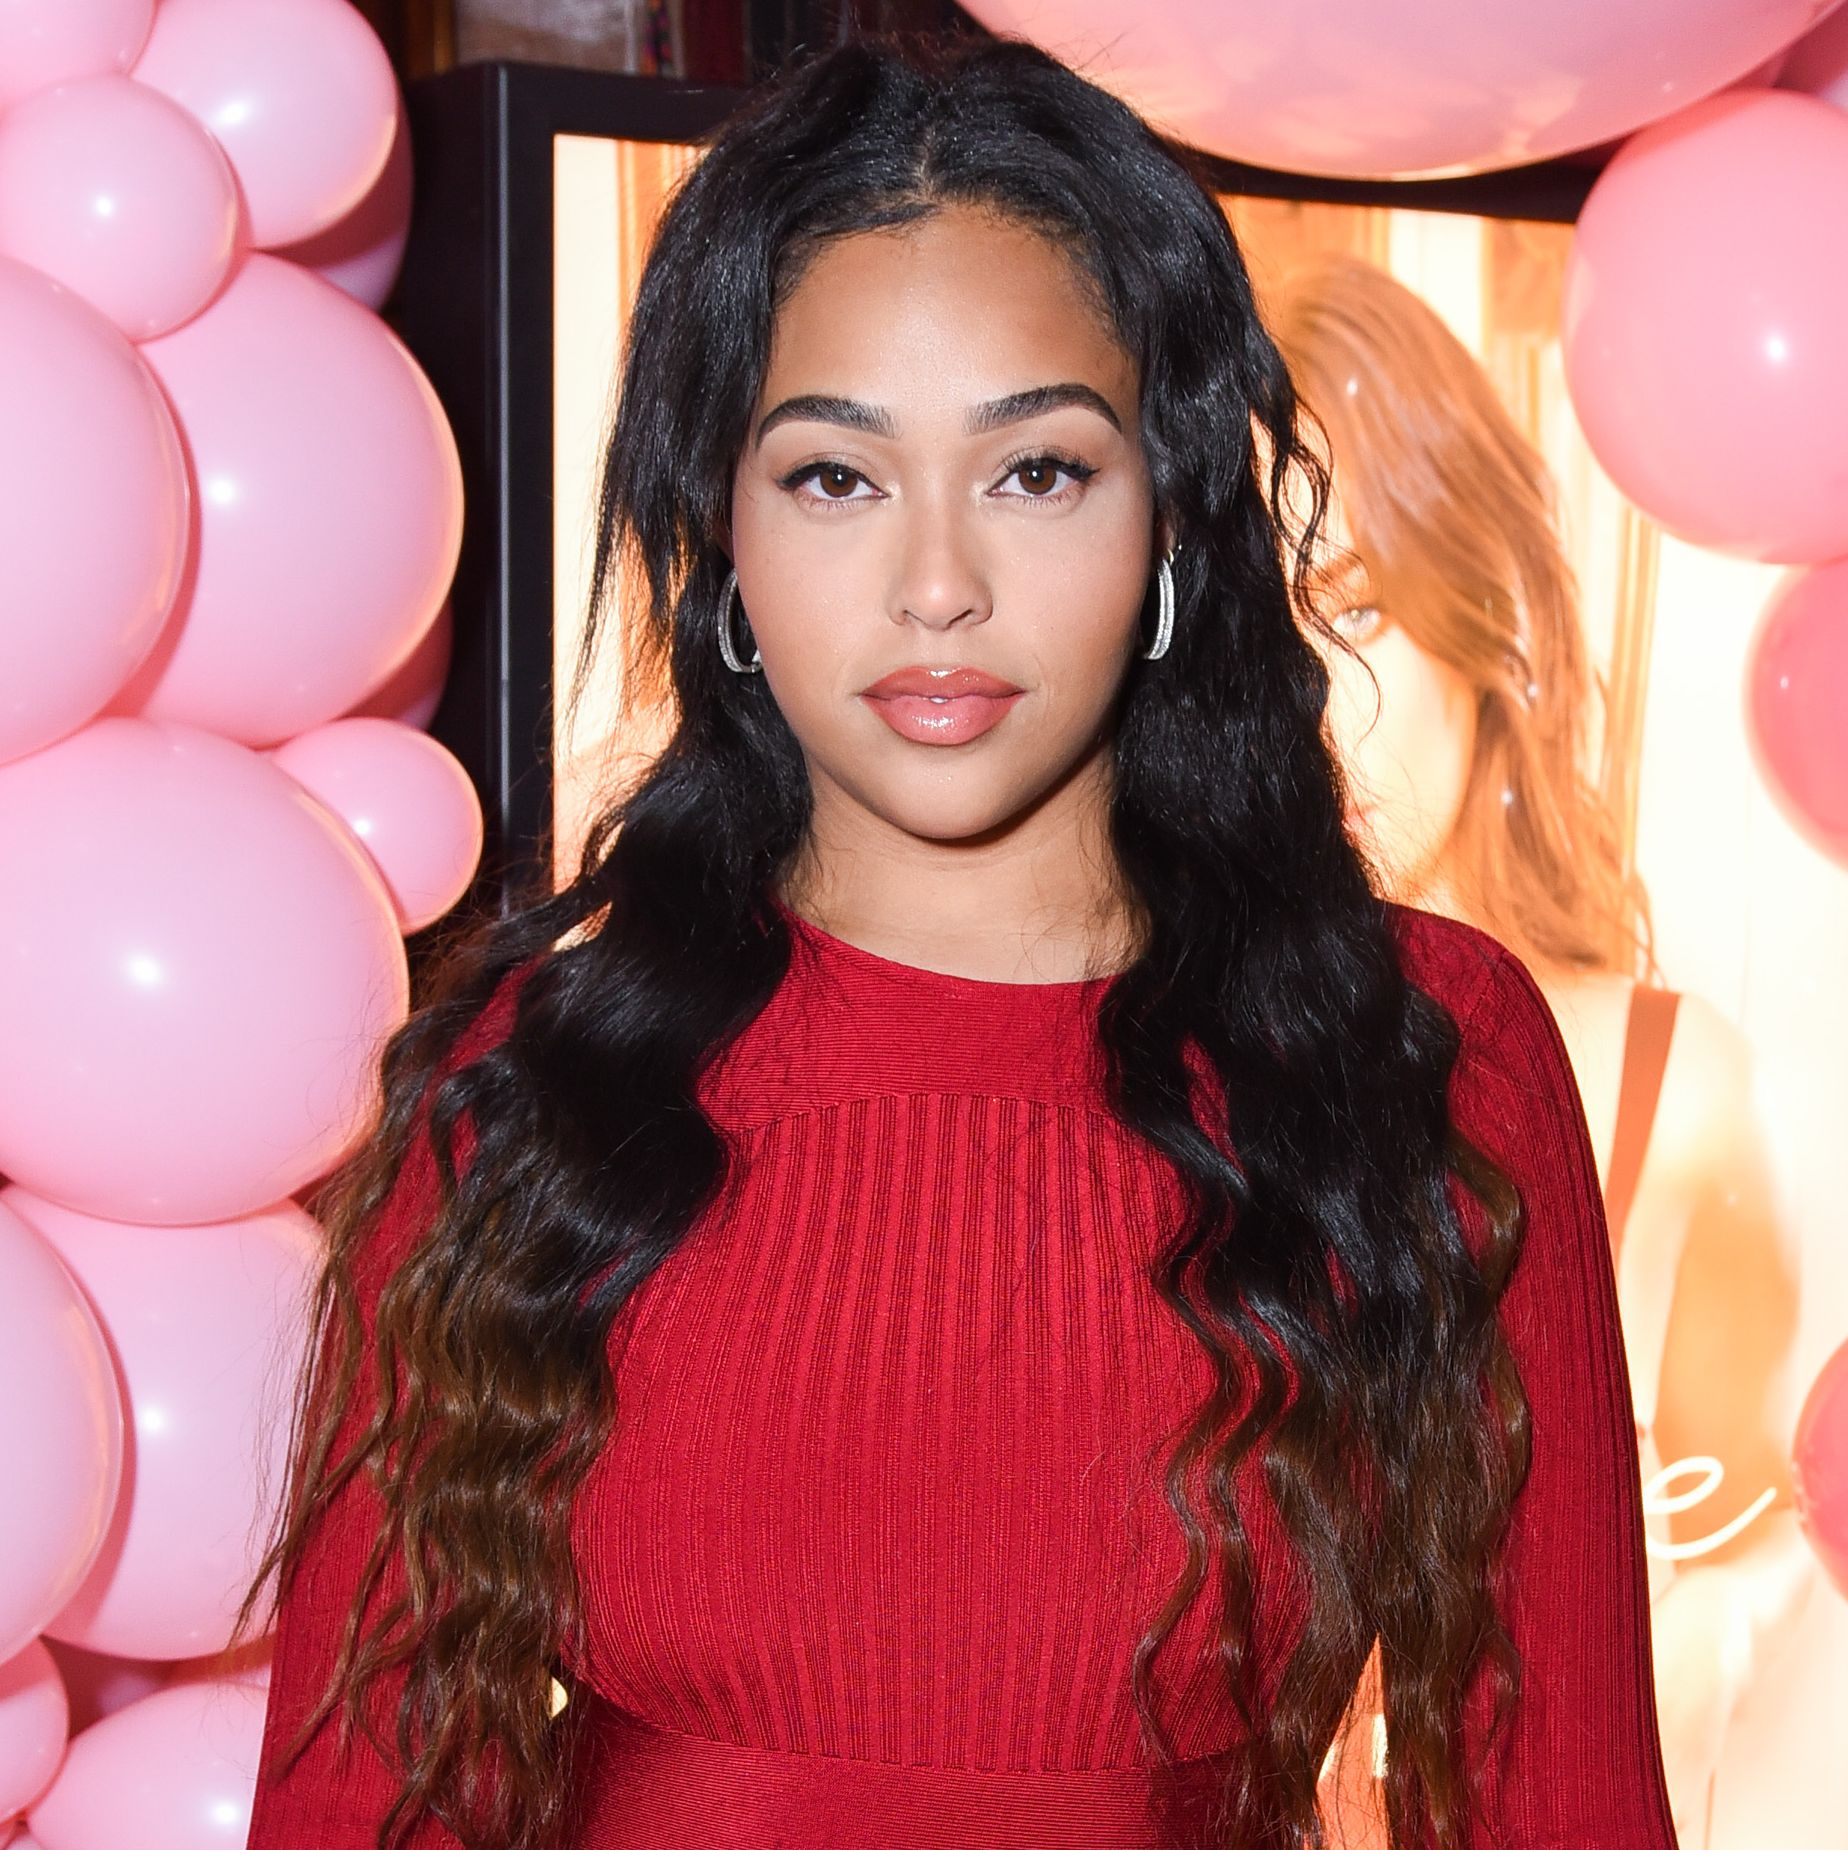 Jordyn Woods Addresses Her Khloé Kardashian-Tristan Thompson Cheating Scandal for the First Time Publicly